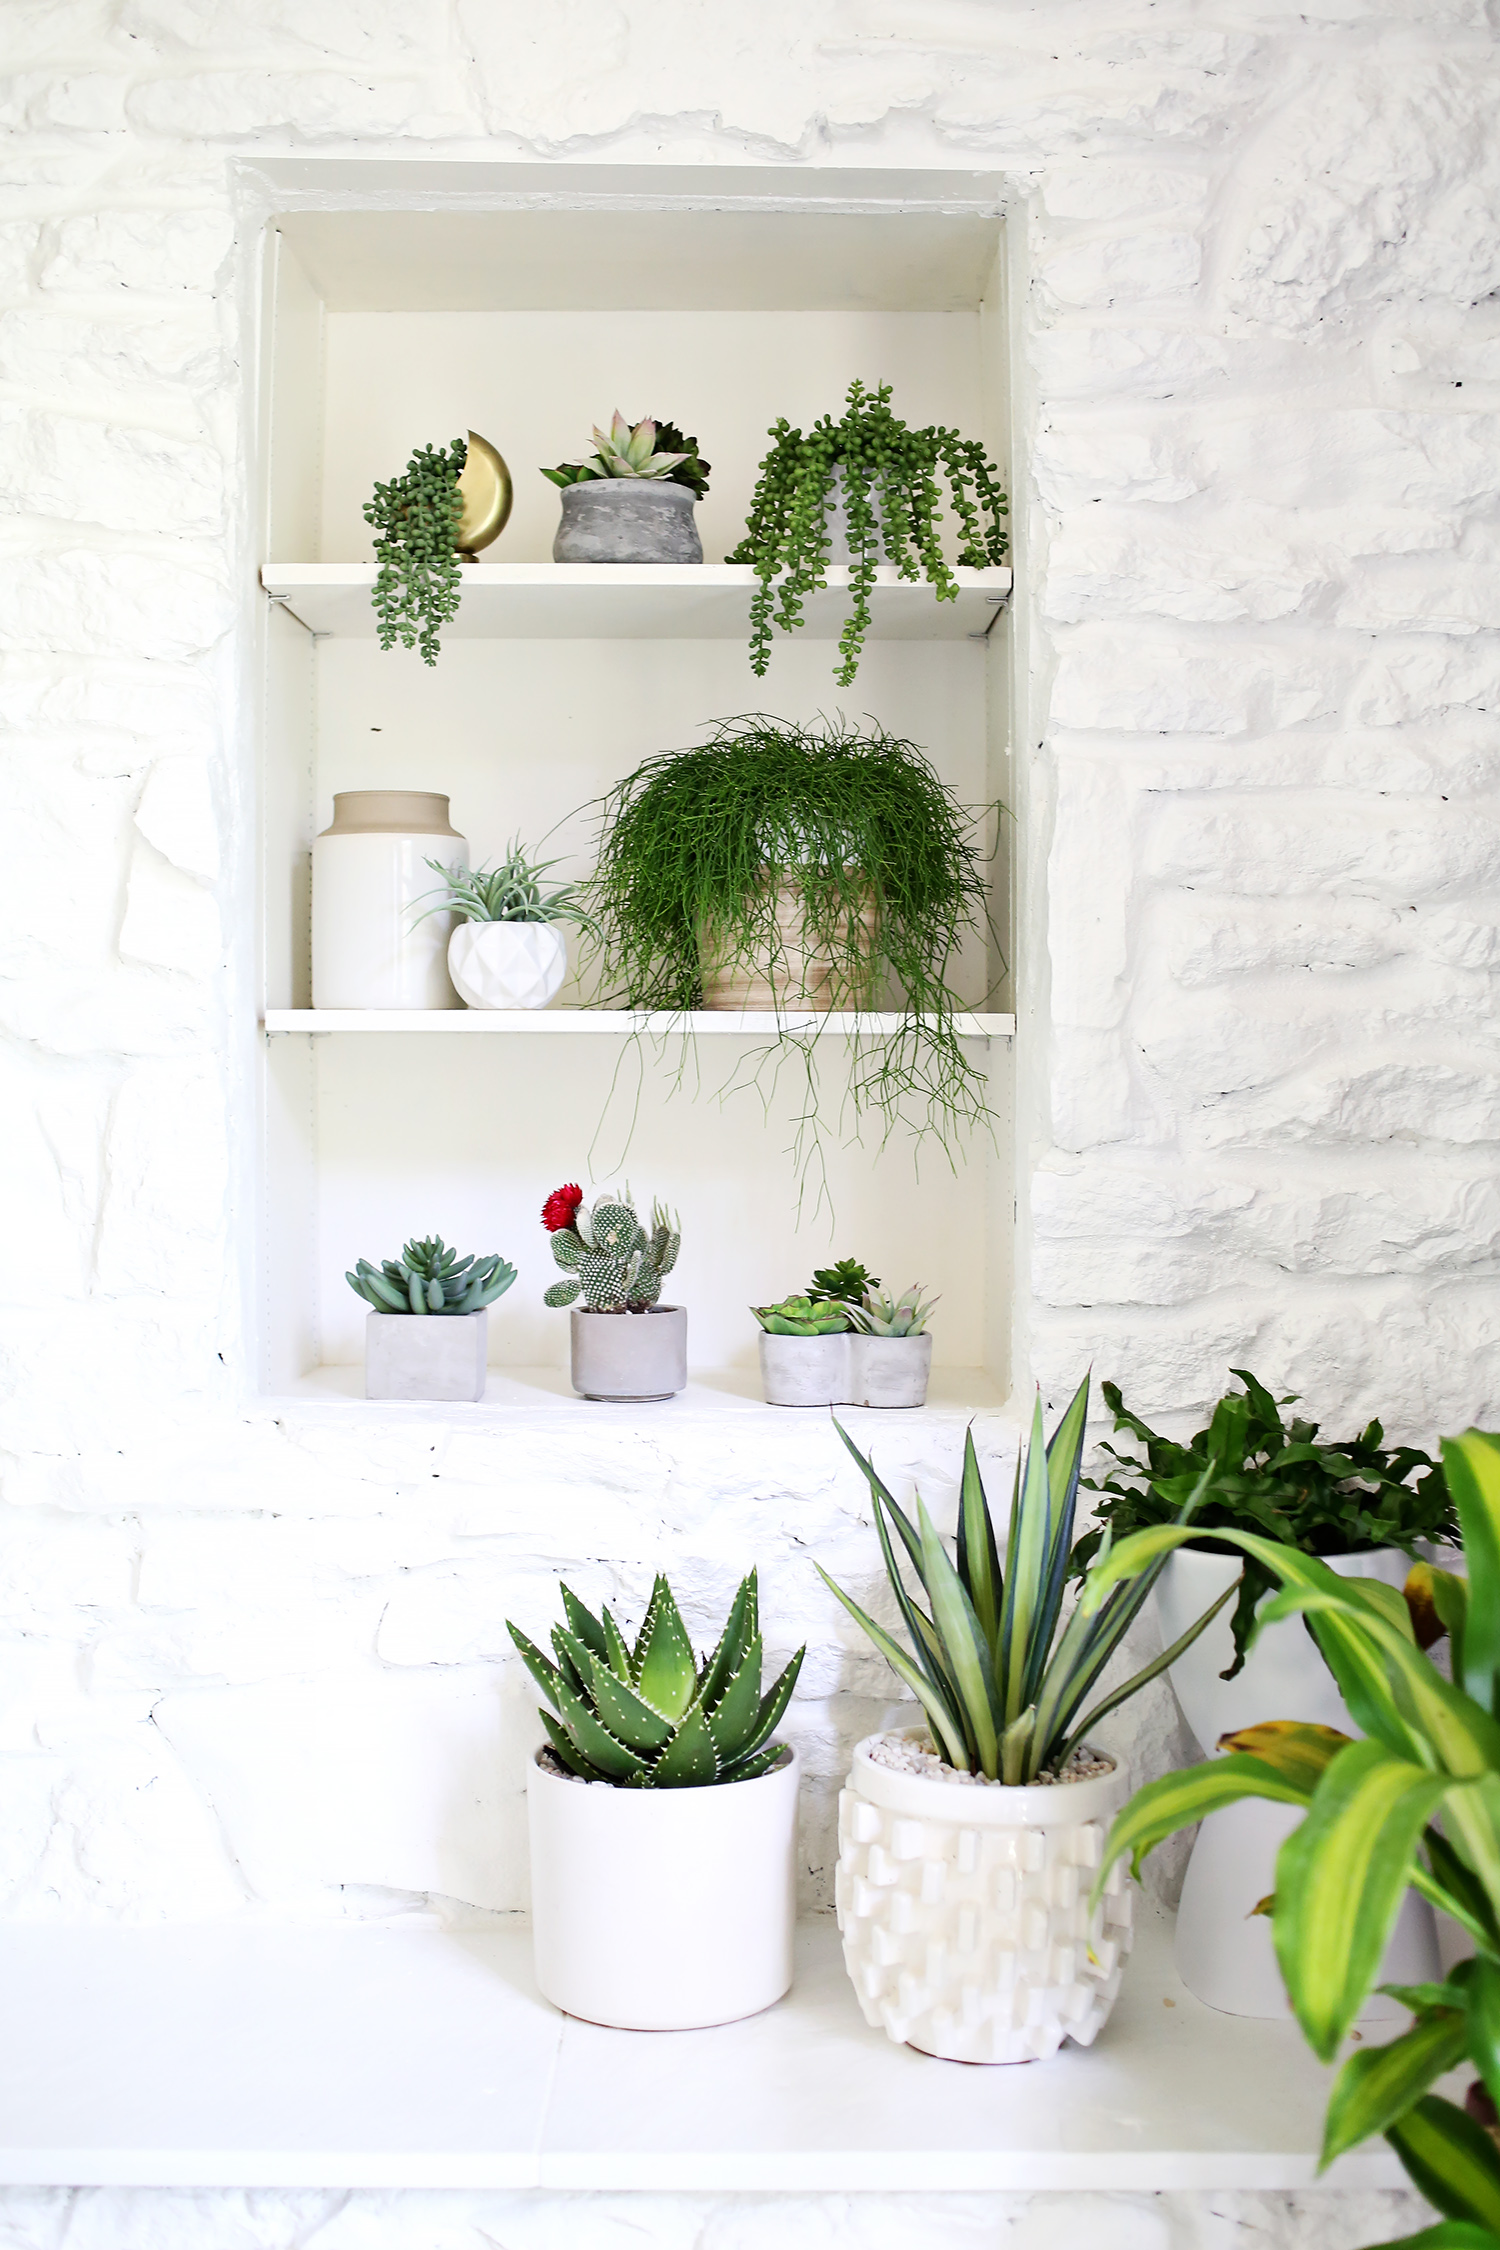 Are you faux real ? (Comment trouver de fausses plantes convaincantes)